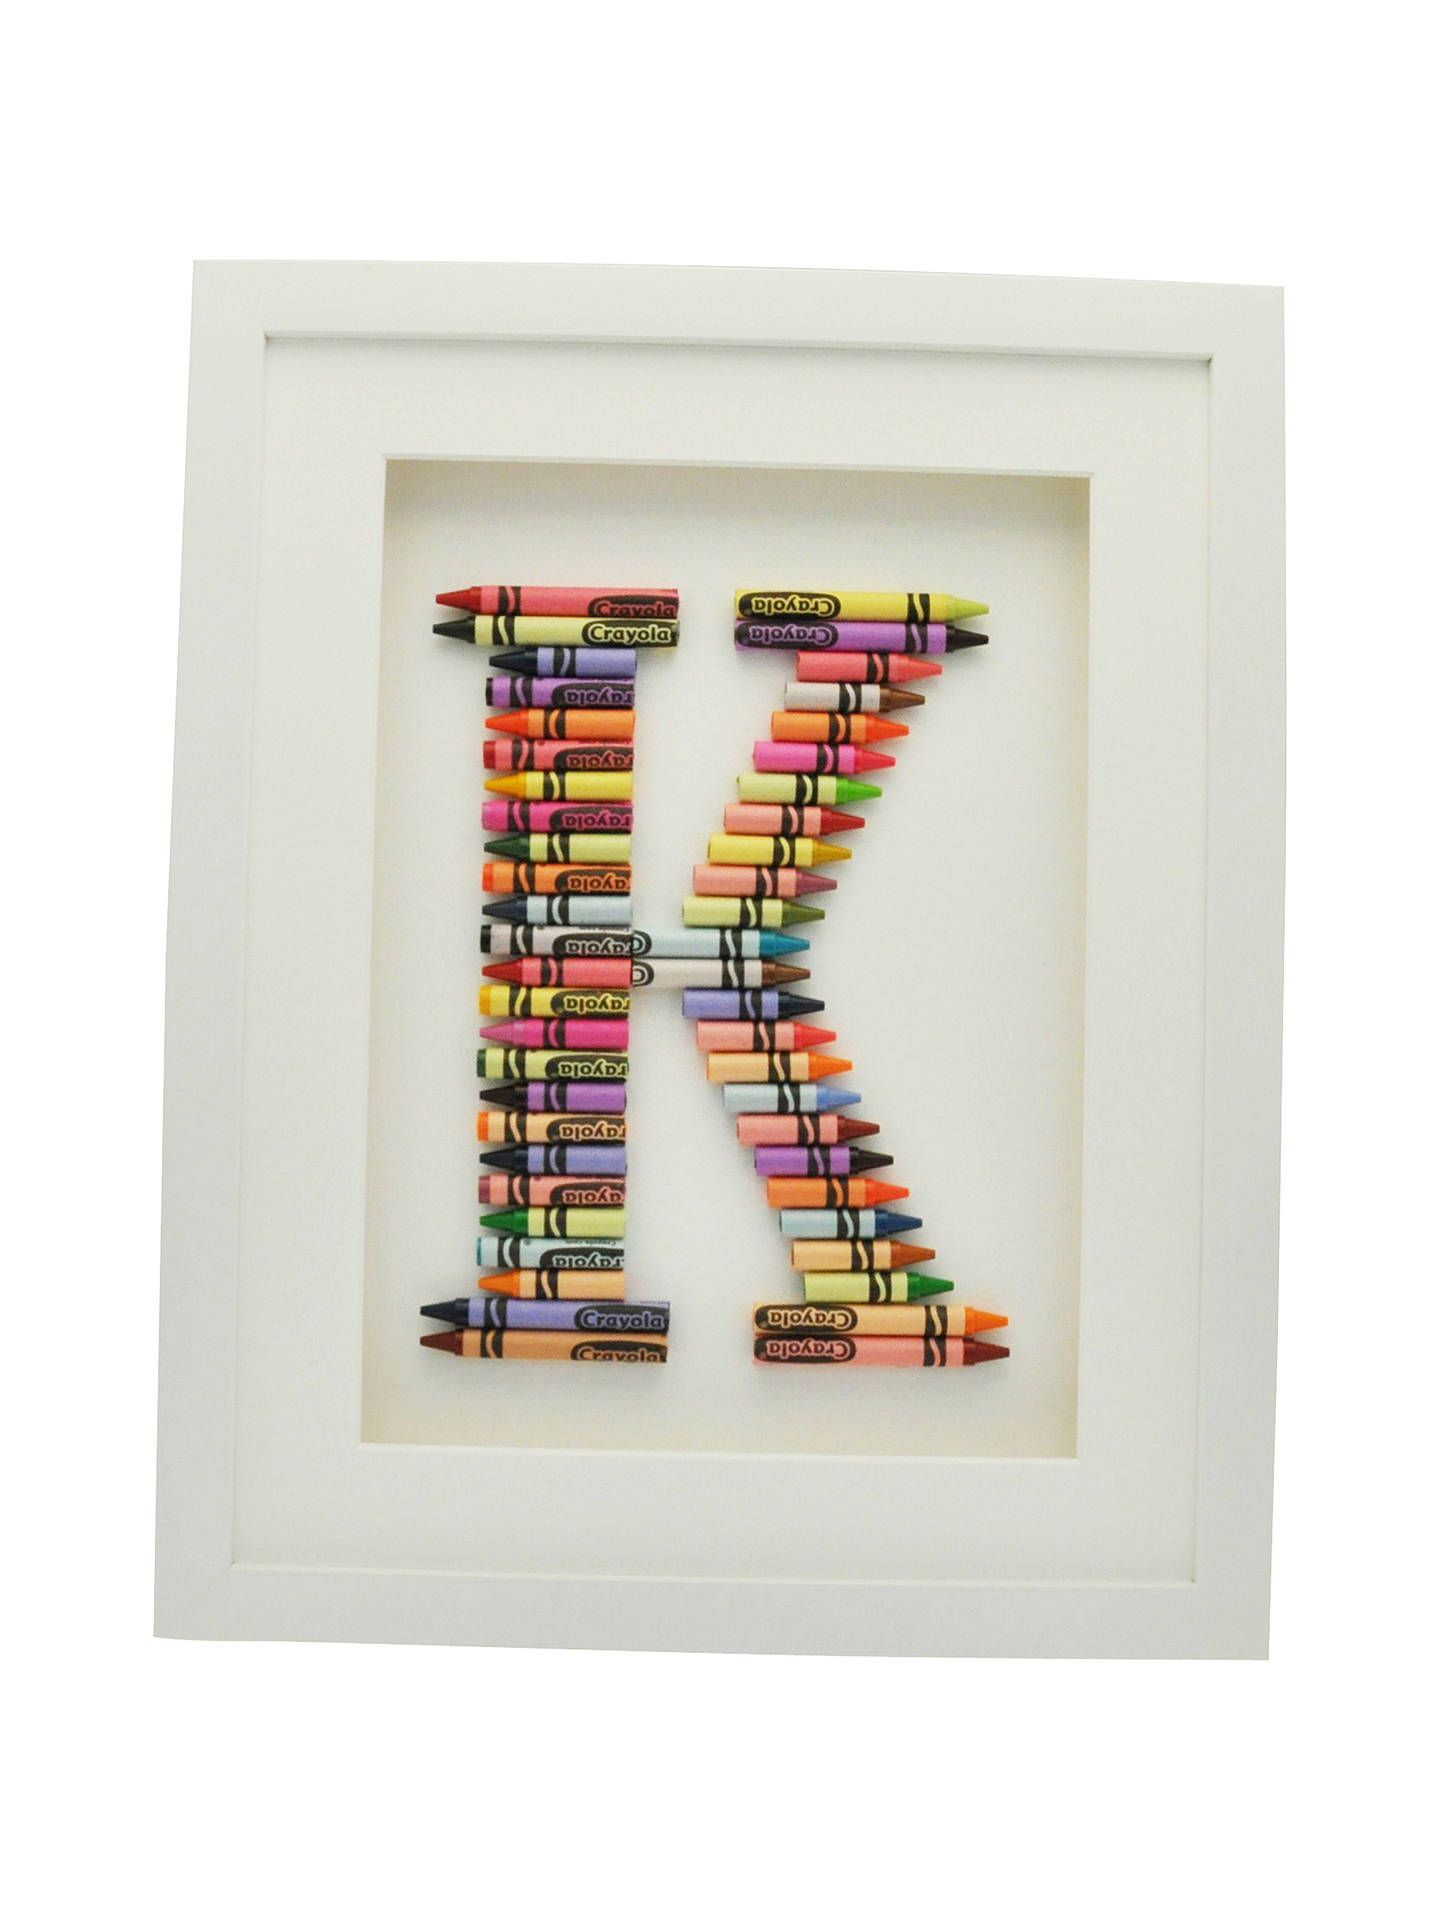 Buy The Letteroom Crayon K Framed 3D Artwork, 34 x 29cm Online at johnlewis.com